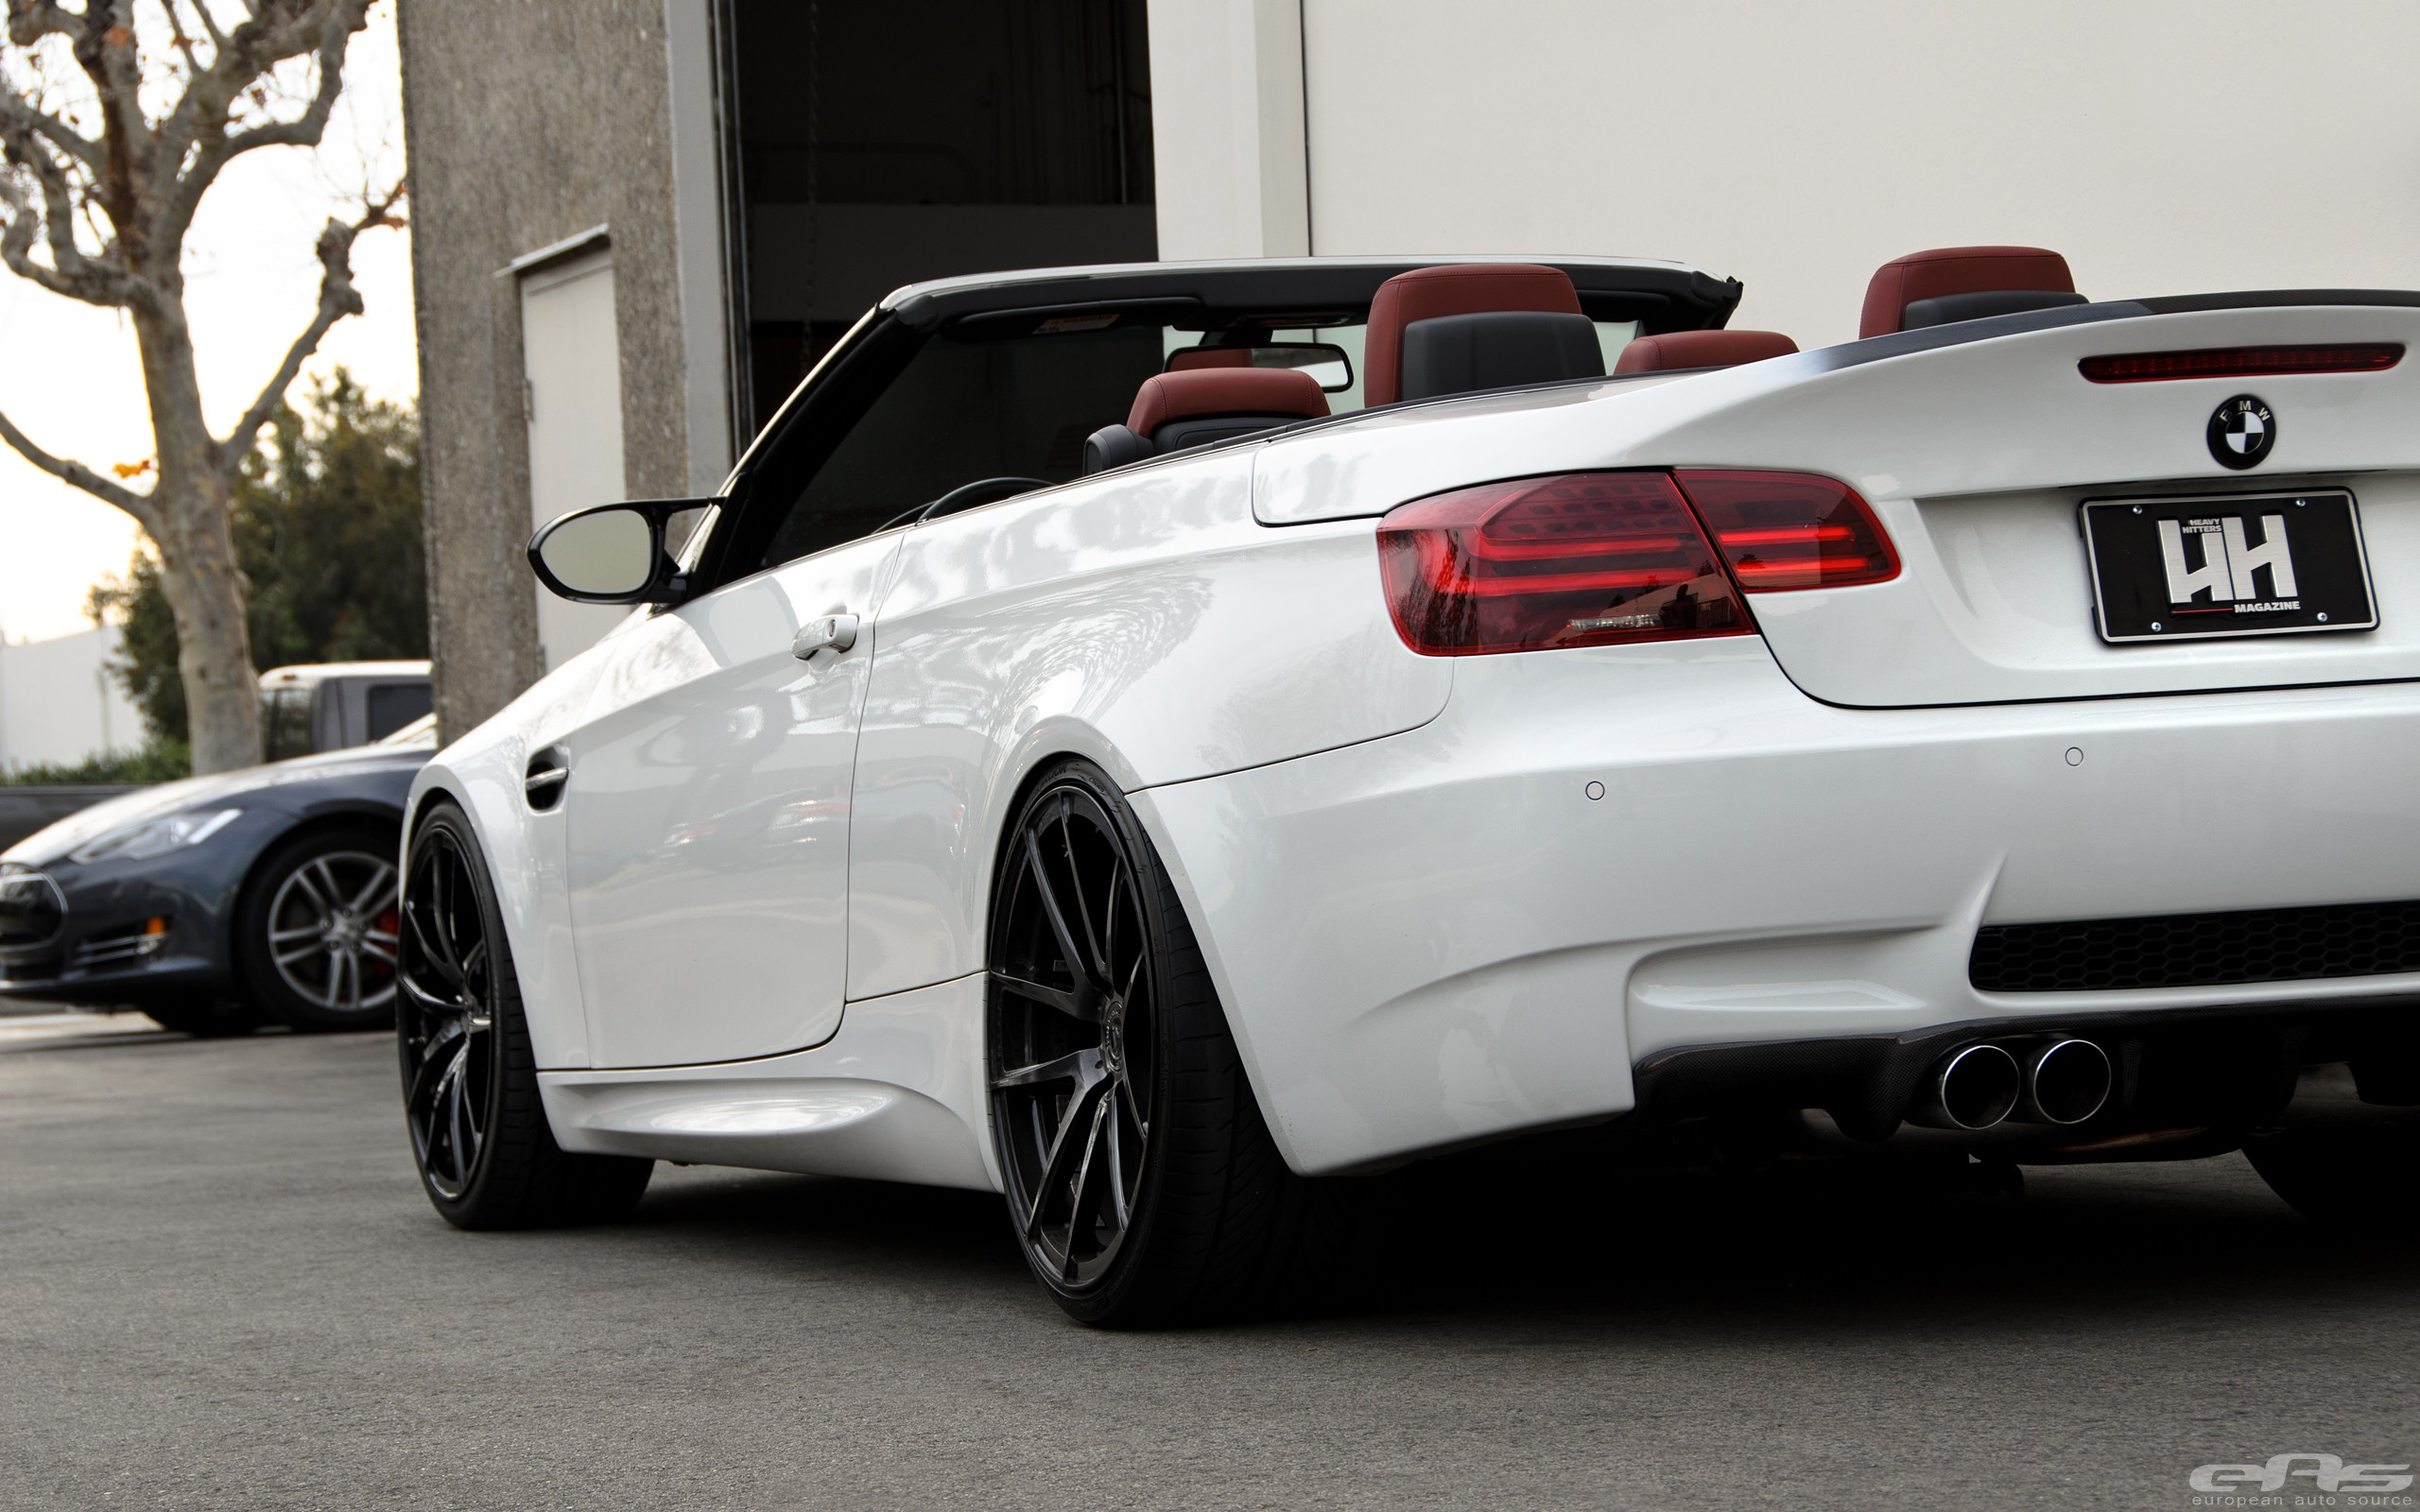 Tuned Bmw E93 M3 Convertible Puts Down 376 Hp At The